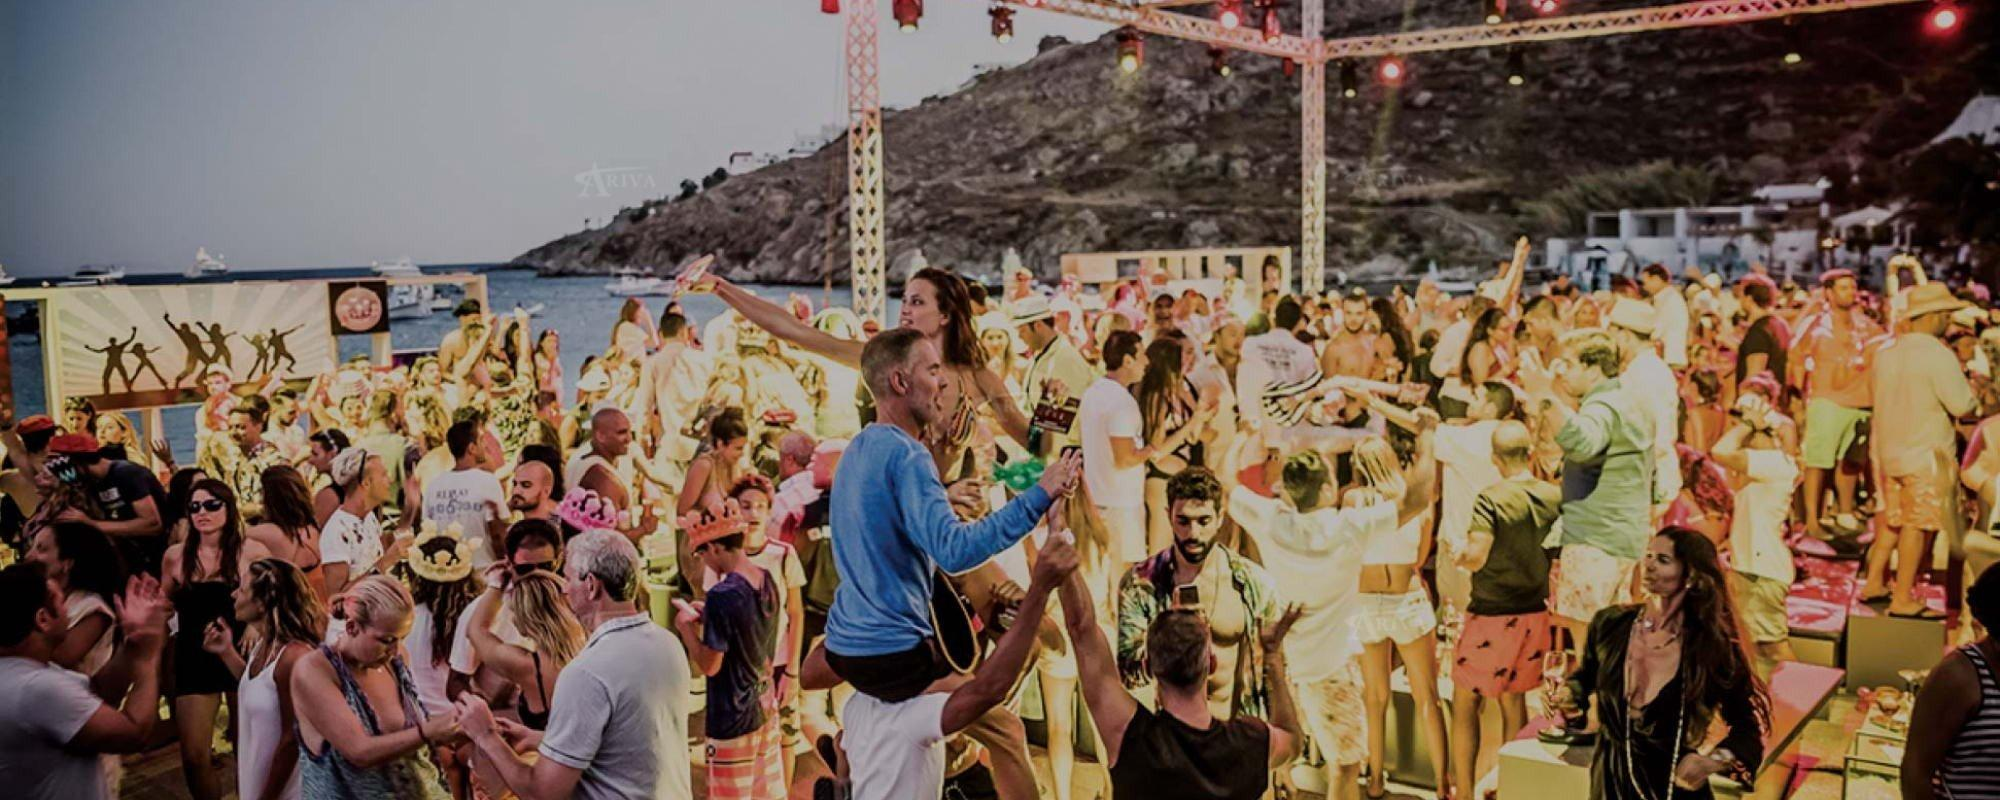 Mykonos Beach Party